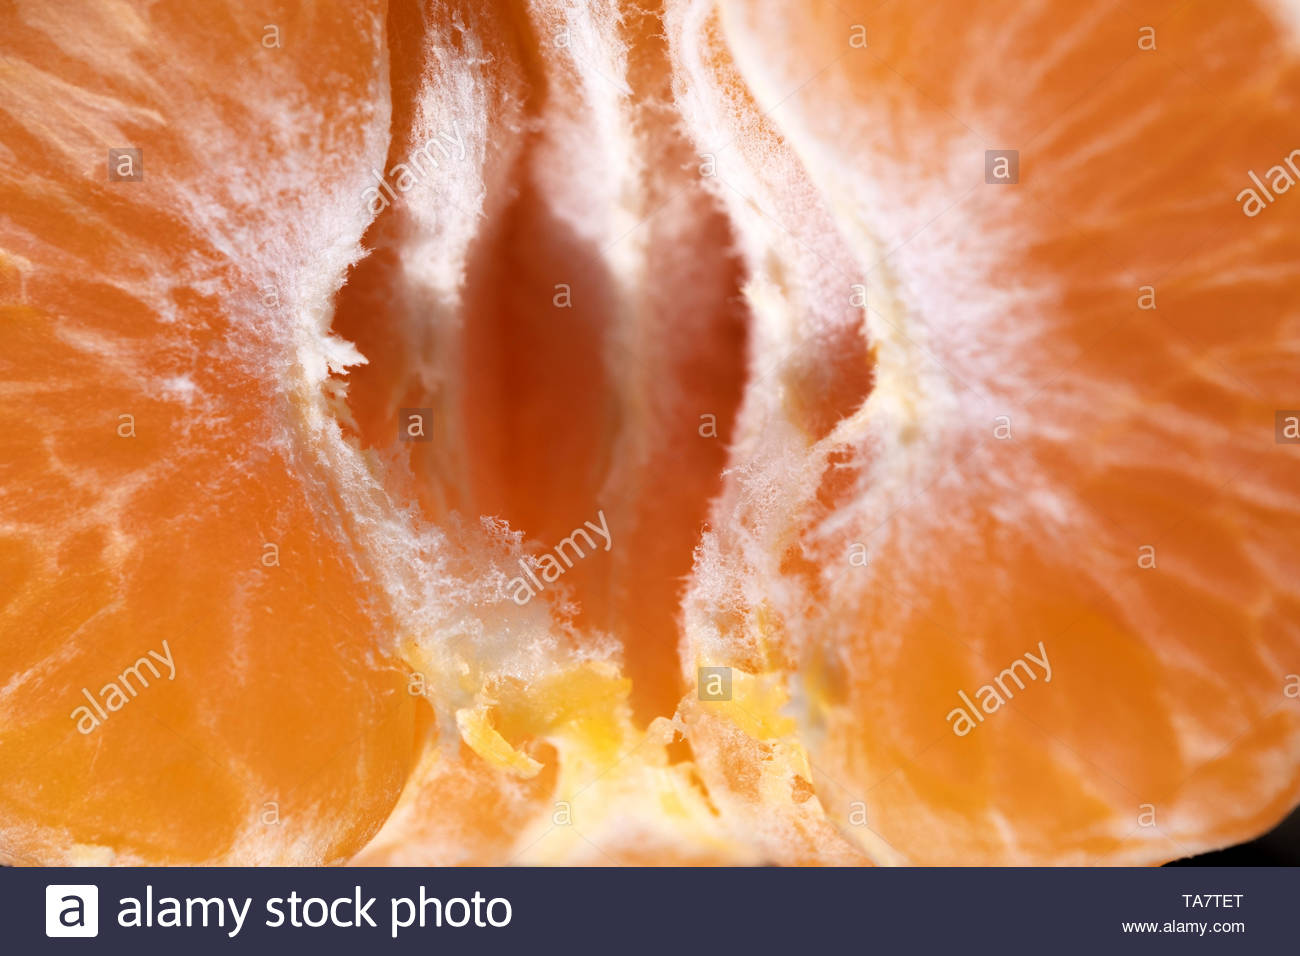 Peeled mandarin slices close-up shot from above, macro image - Stock Image